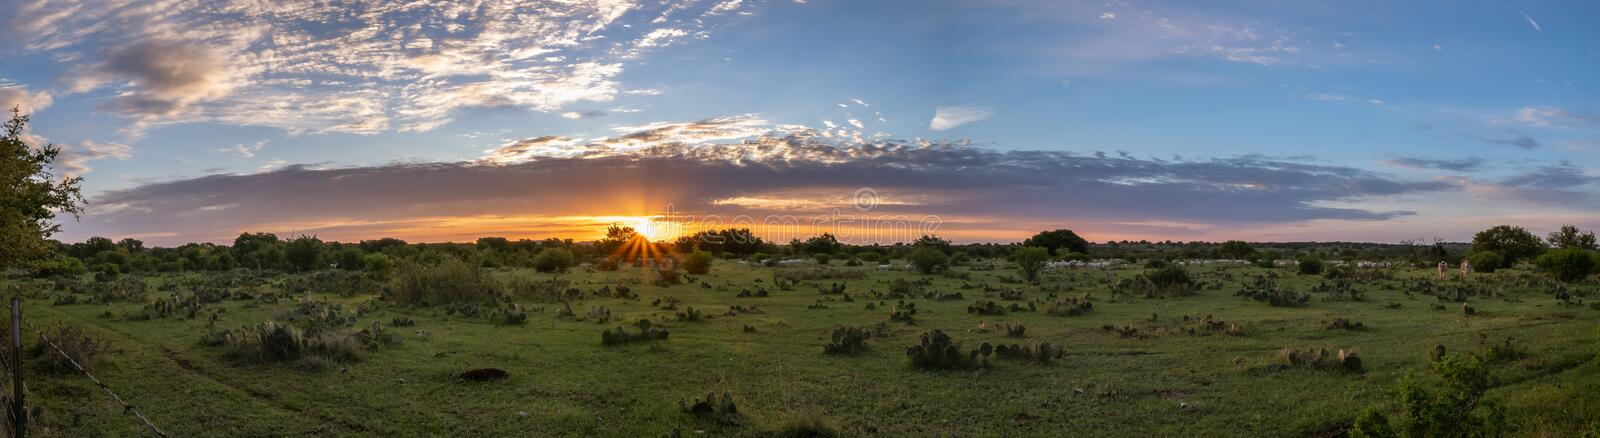 Panoramic view of Texas field at sunrise. With cactus, sheep and burrows looking on royalty free stock photos